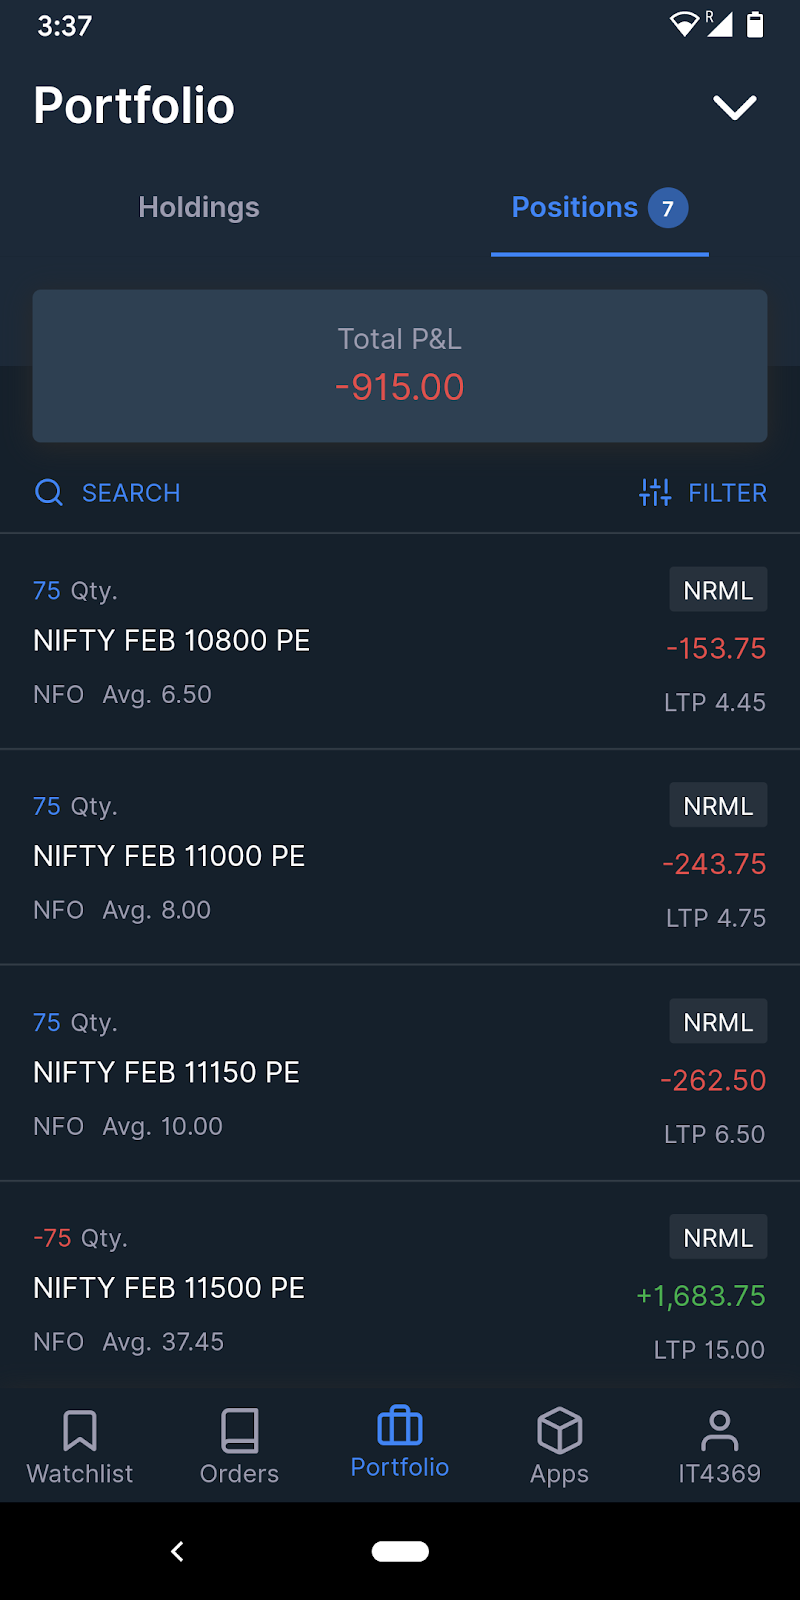 P&L for 7 Feb